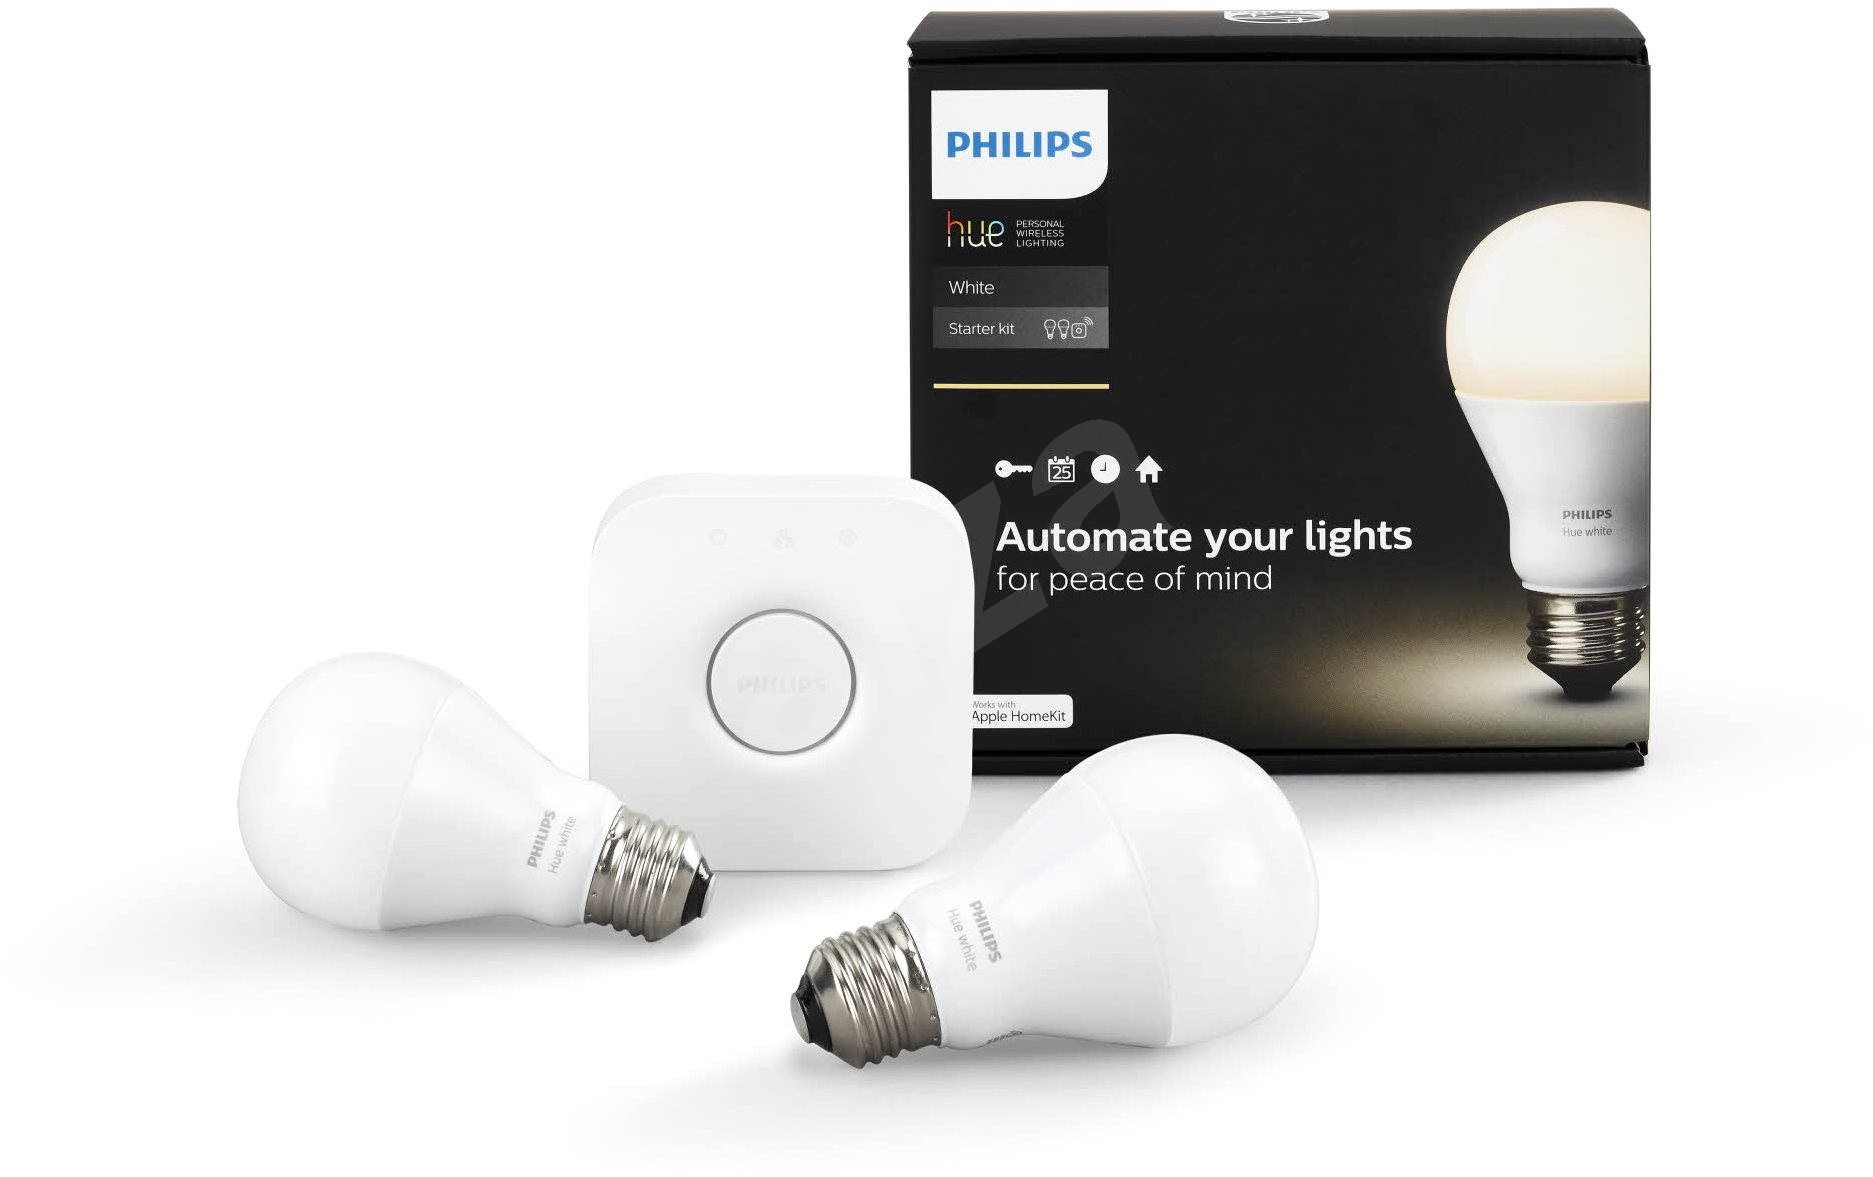 Philips hue white 8 5w e27 starter kit led bulb - Philips hue starter kit ...